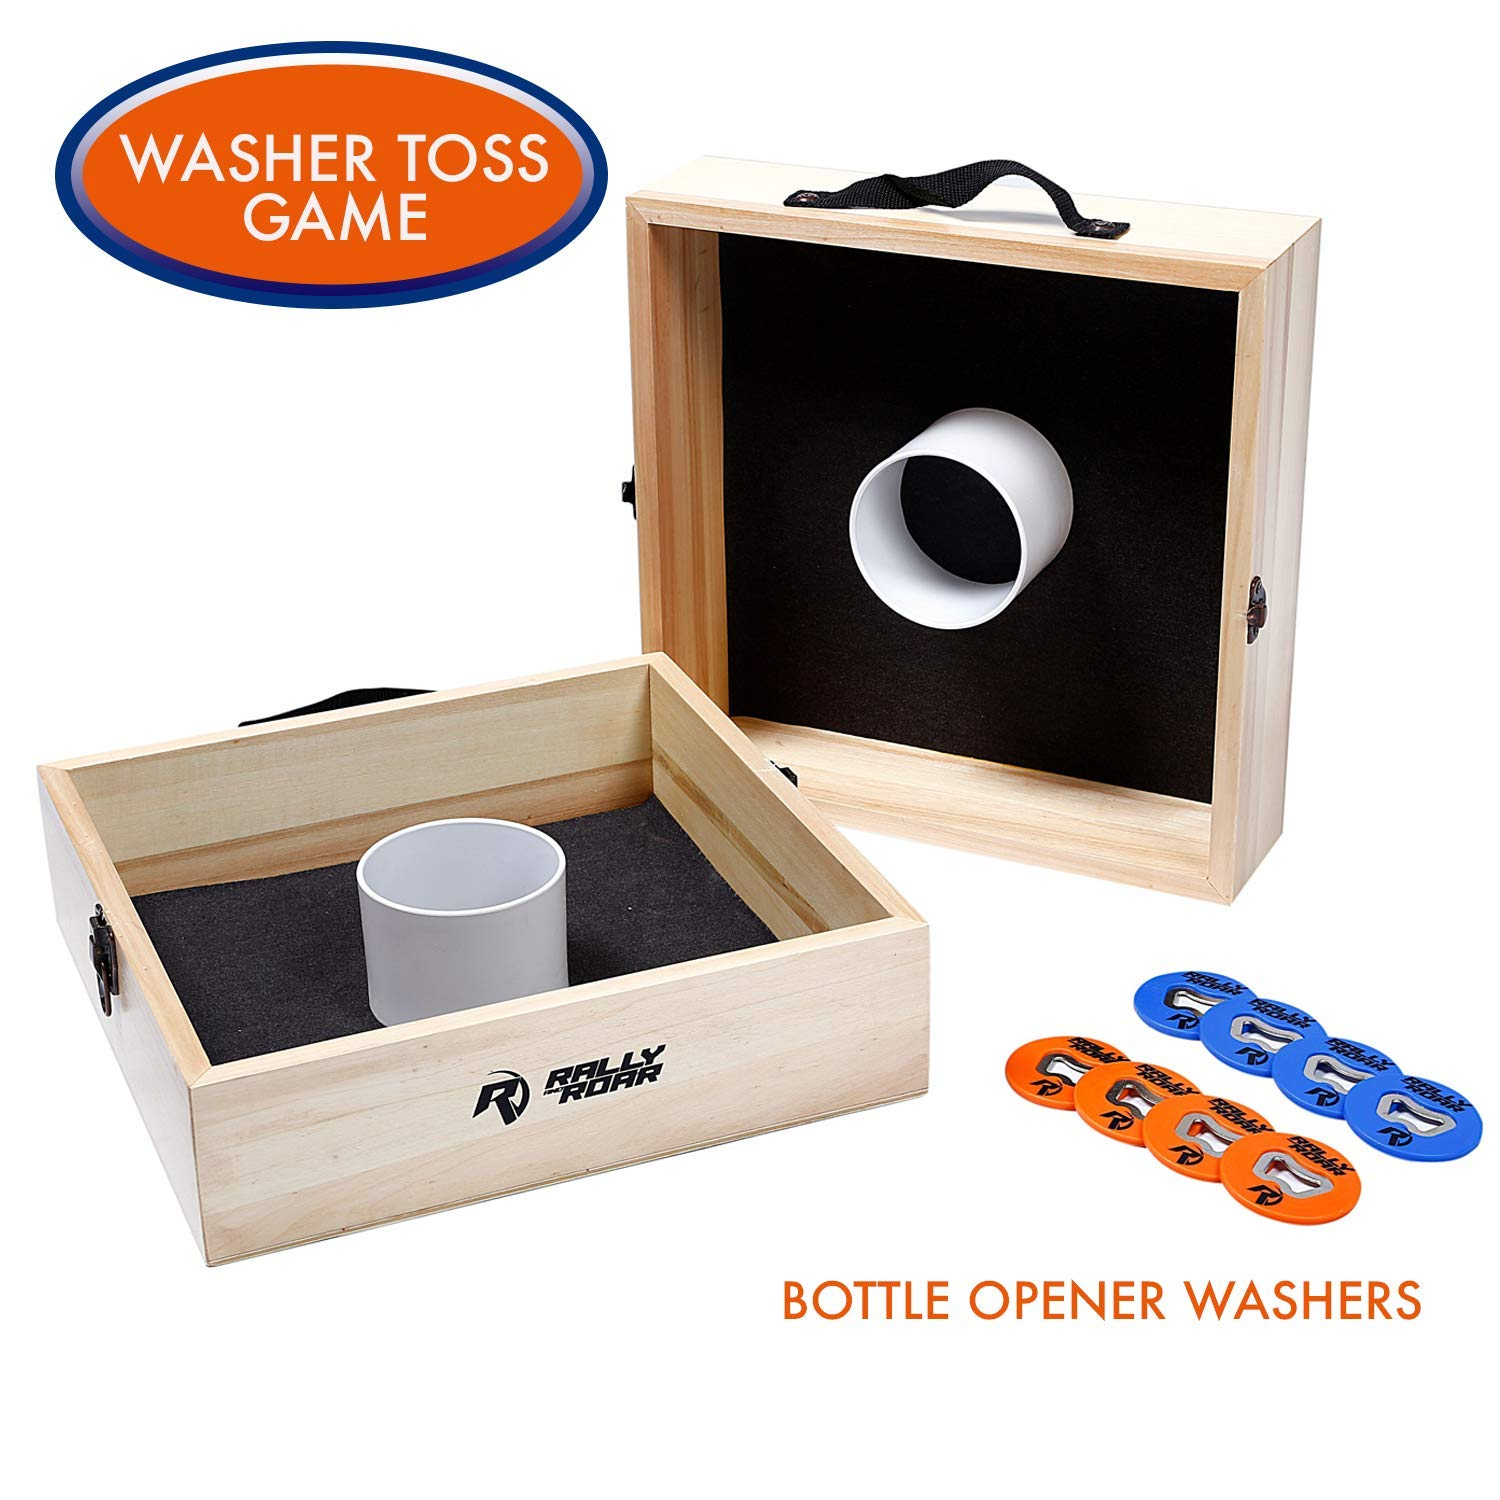 Washer Toss Game by Rally and Roar - Portable 10 Piece Pitching Washers Target Set - 15in x 15in x 4in - Official Regulation Size - Stainless Steel Washer Bottle Opener - Outdoor Party Games - Washoes by Rally and Roar